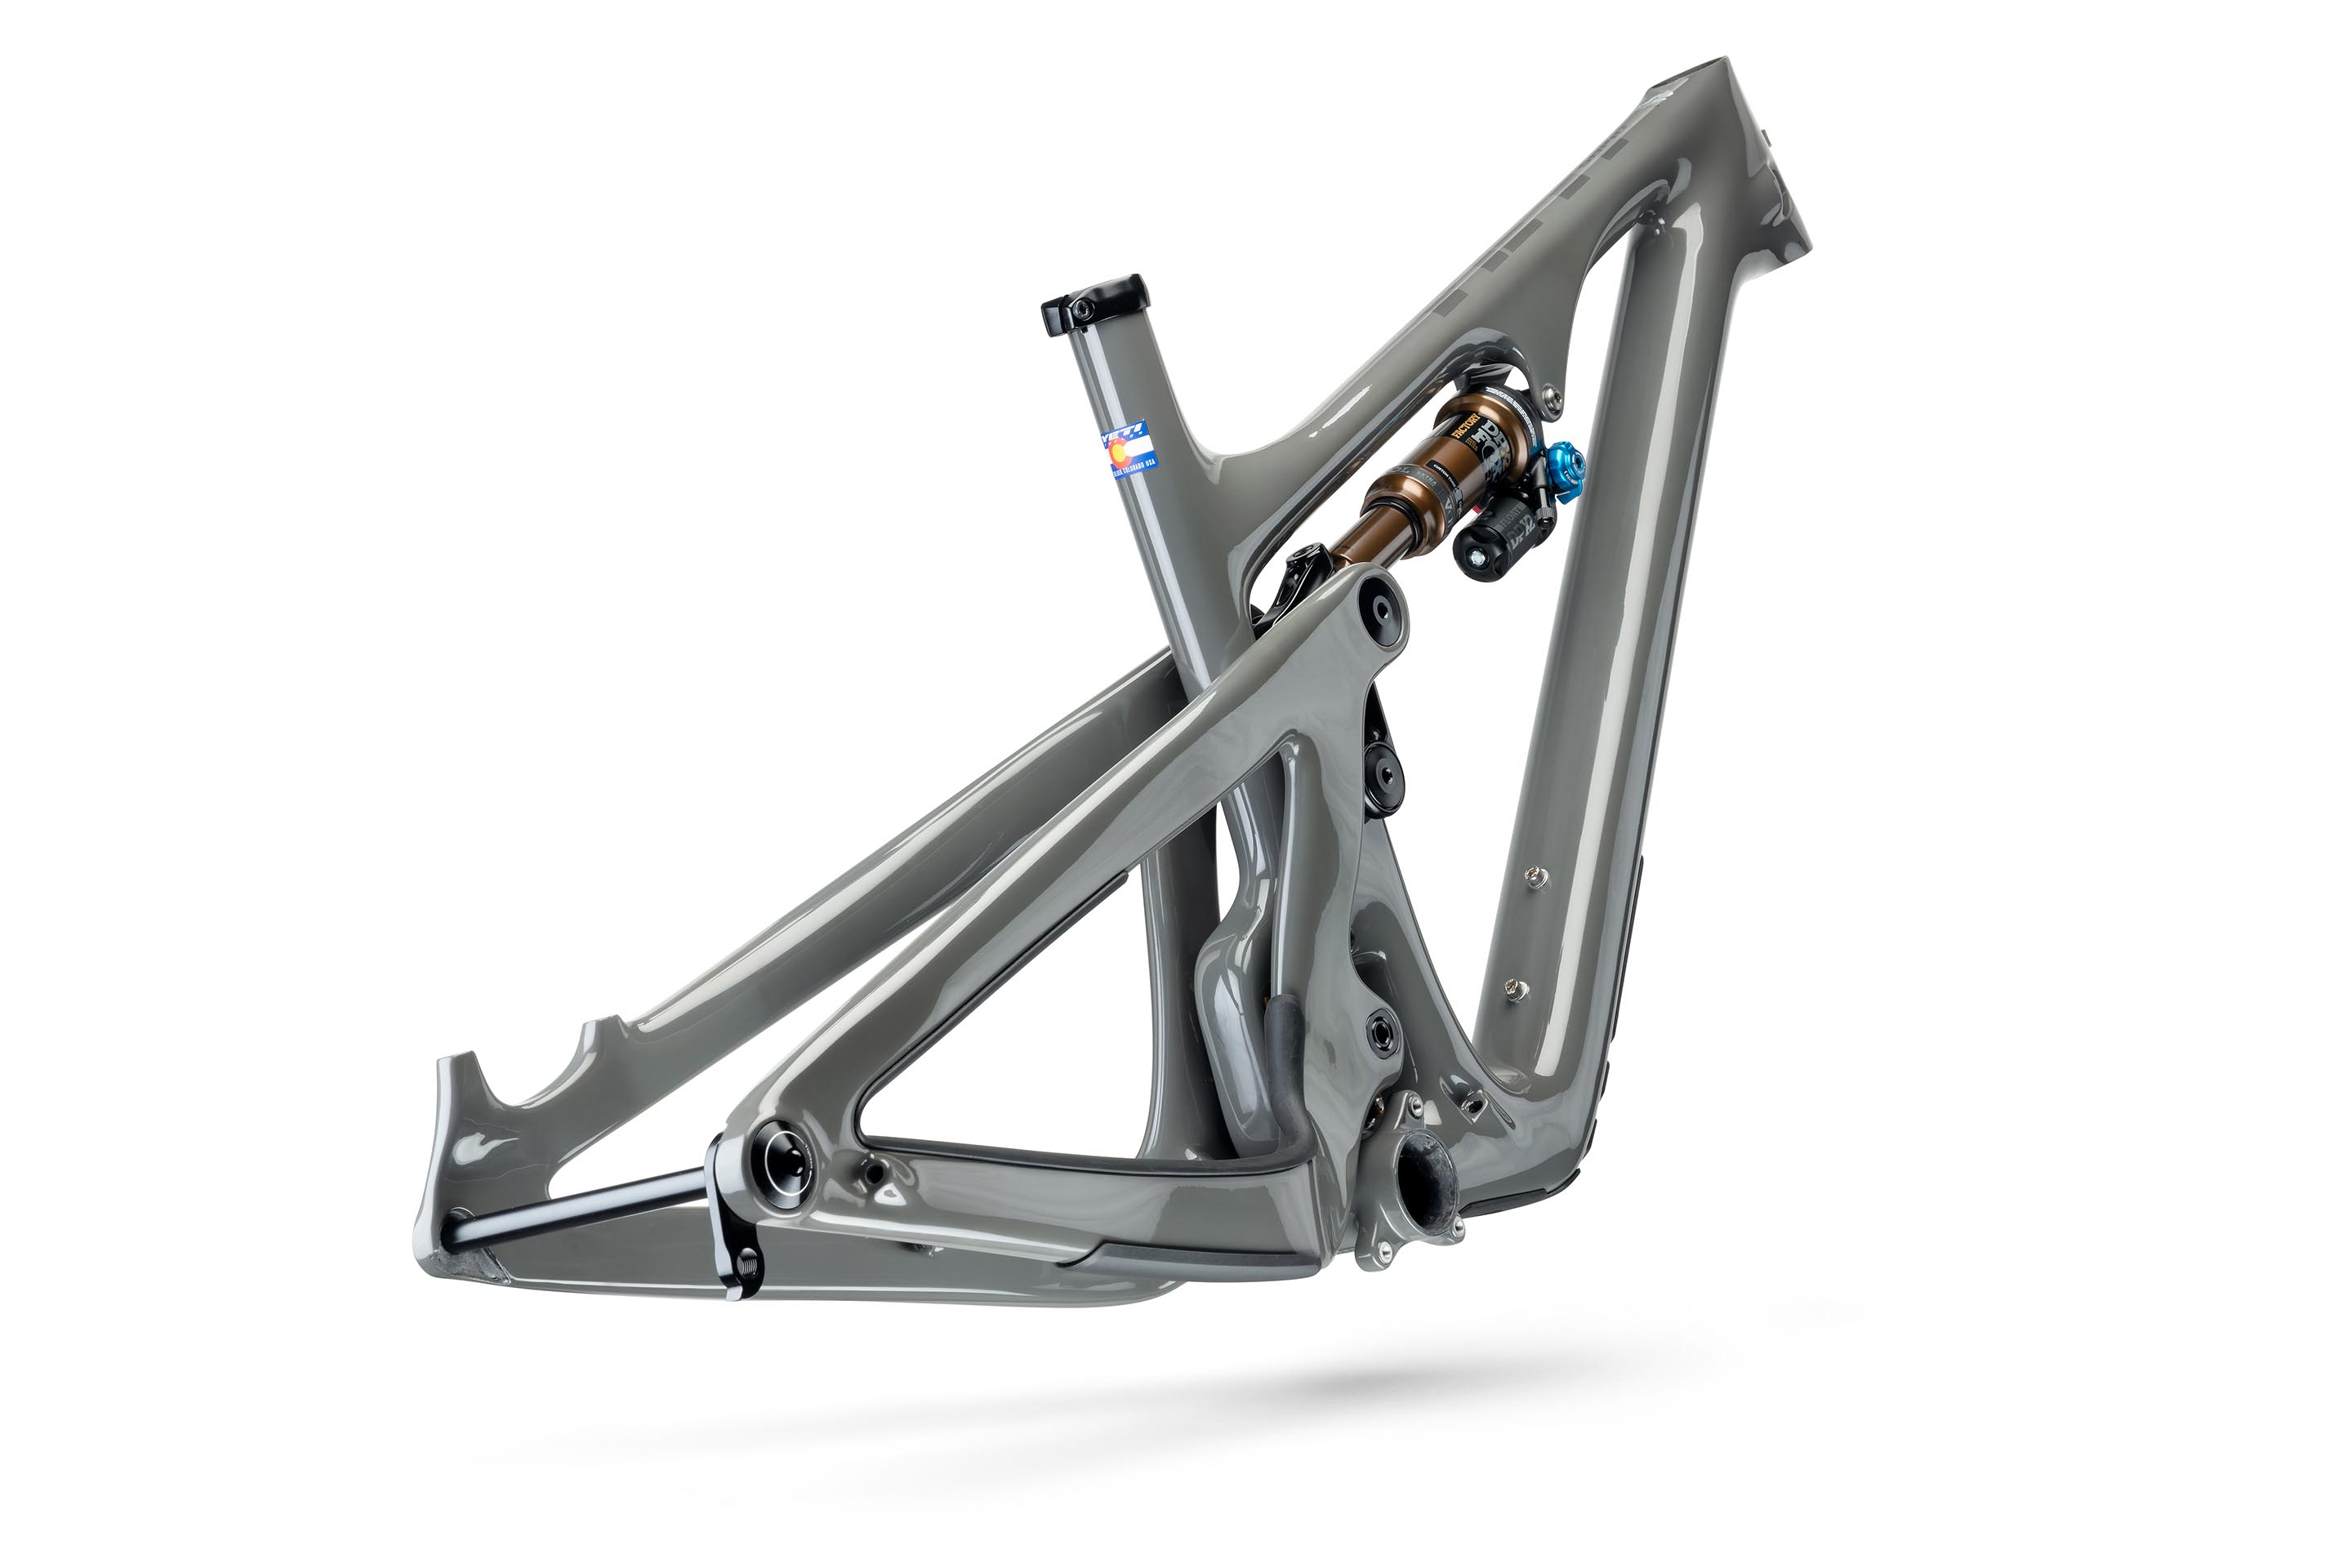 2020_YetiCycles_SB140_Frame_Lead_02